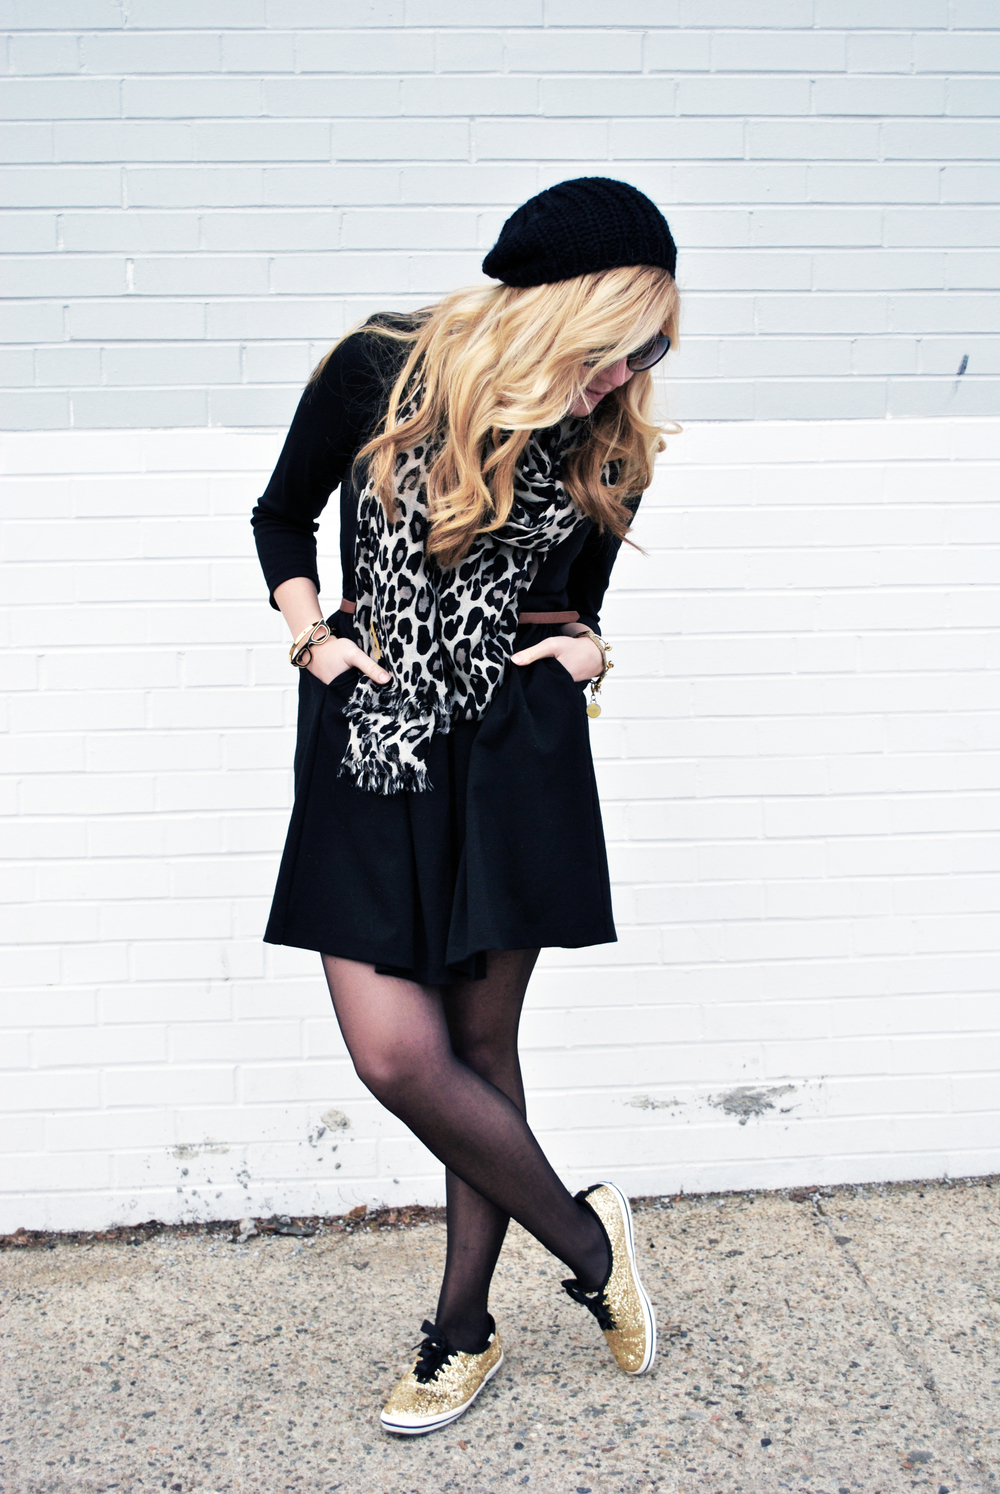 thoughtfulwish | black and gold outfit // preppy // little black dress // kate spade // keds // glitter // meredith wish // boston